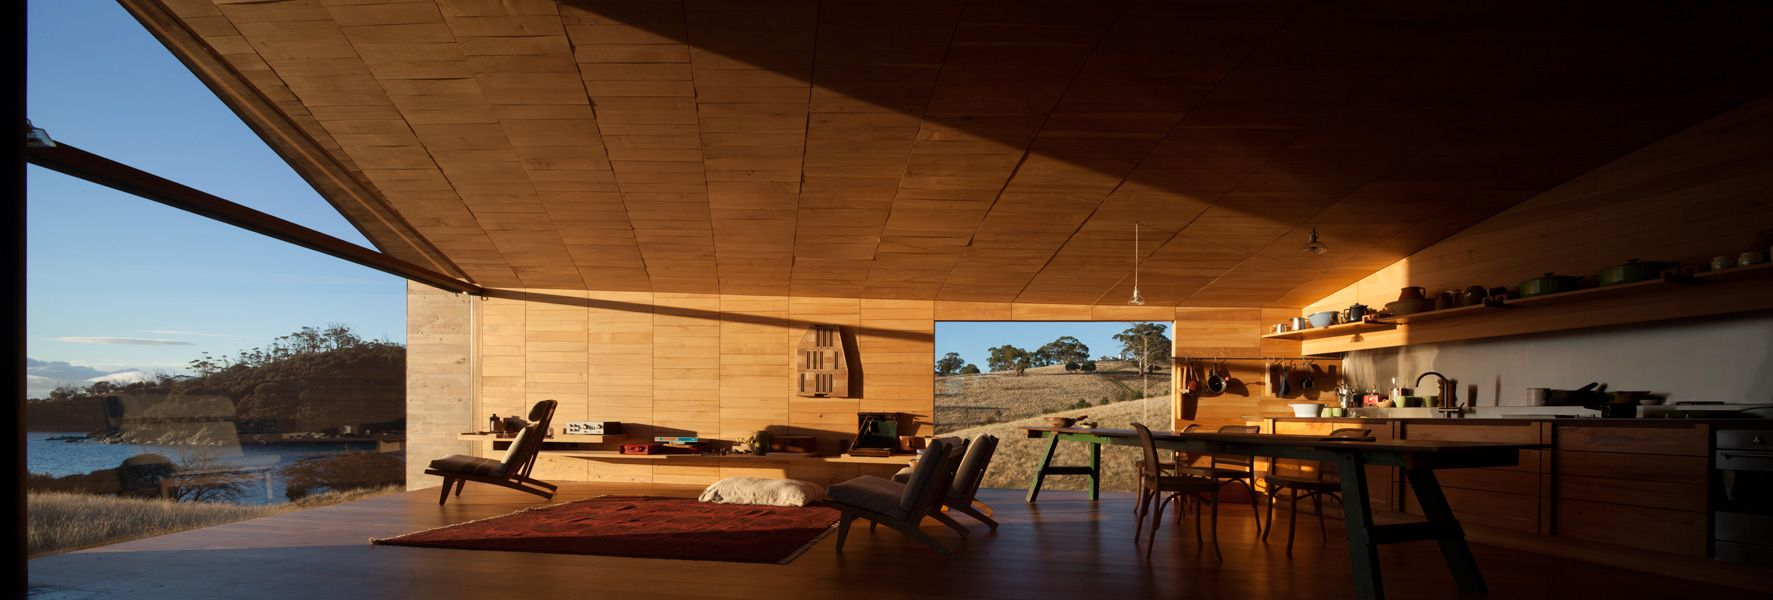 MOCO LOCO Galleries | Shearer's Quarters House by John Wardle Architects